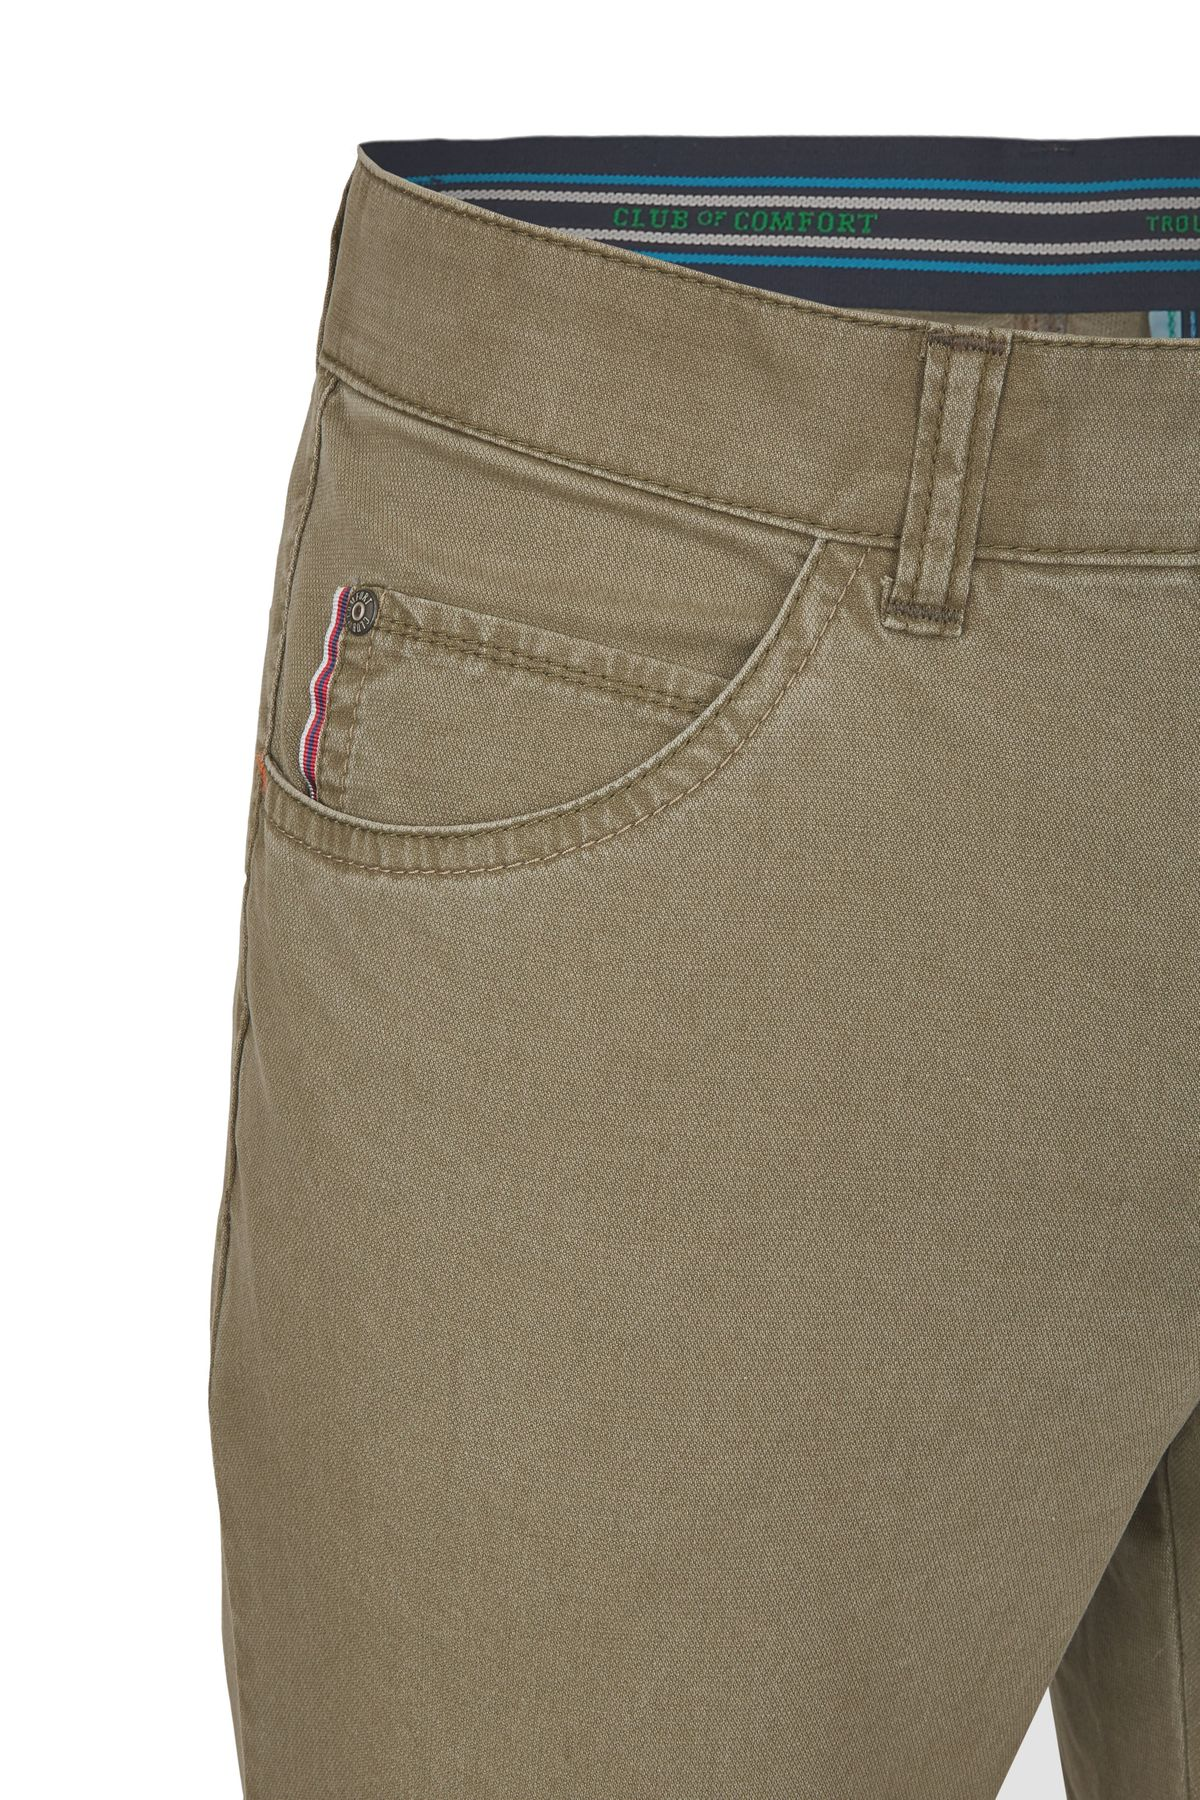 Club of Comfort - Herren Chino Hose, Marvin (6901) – Bild 13